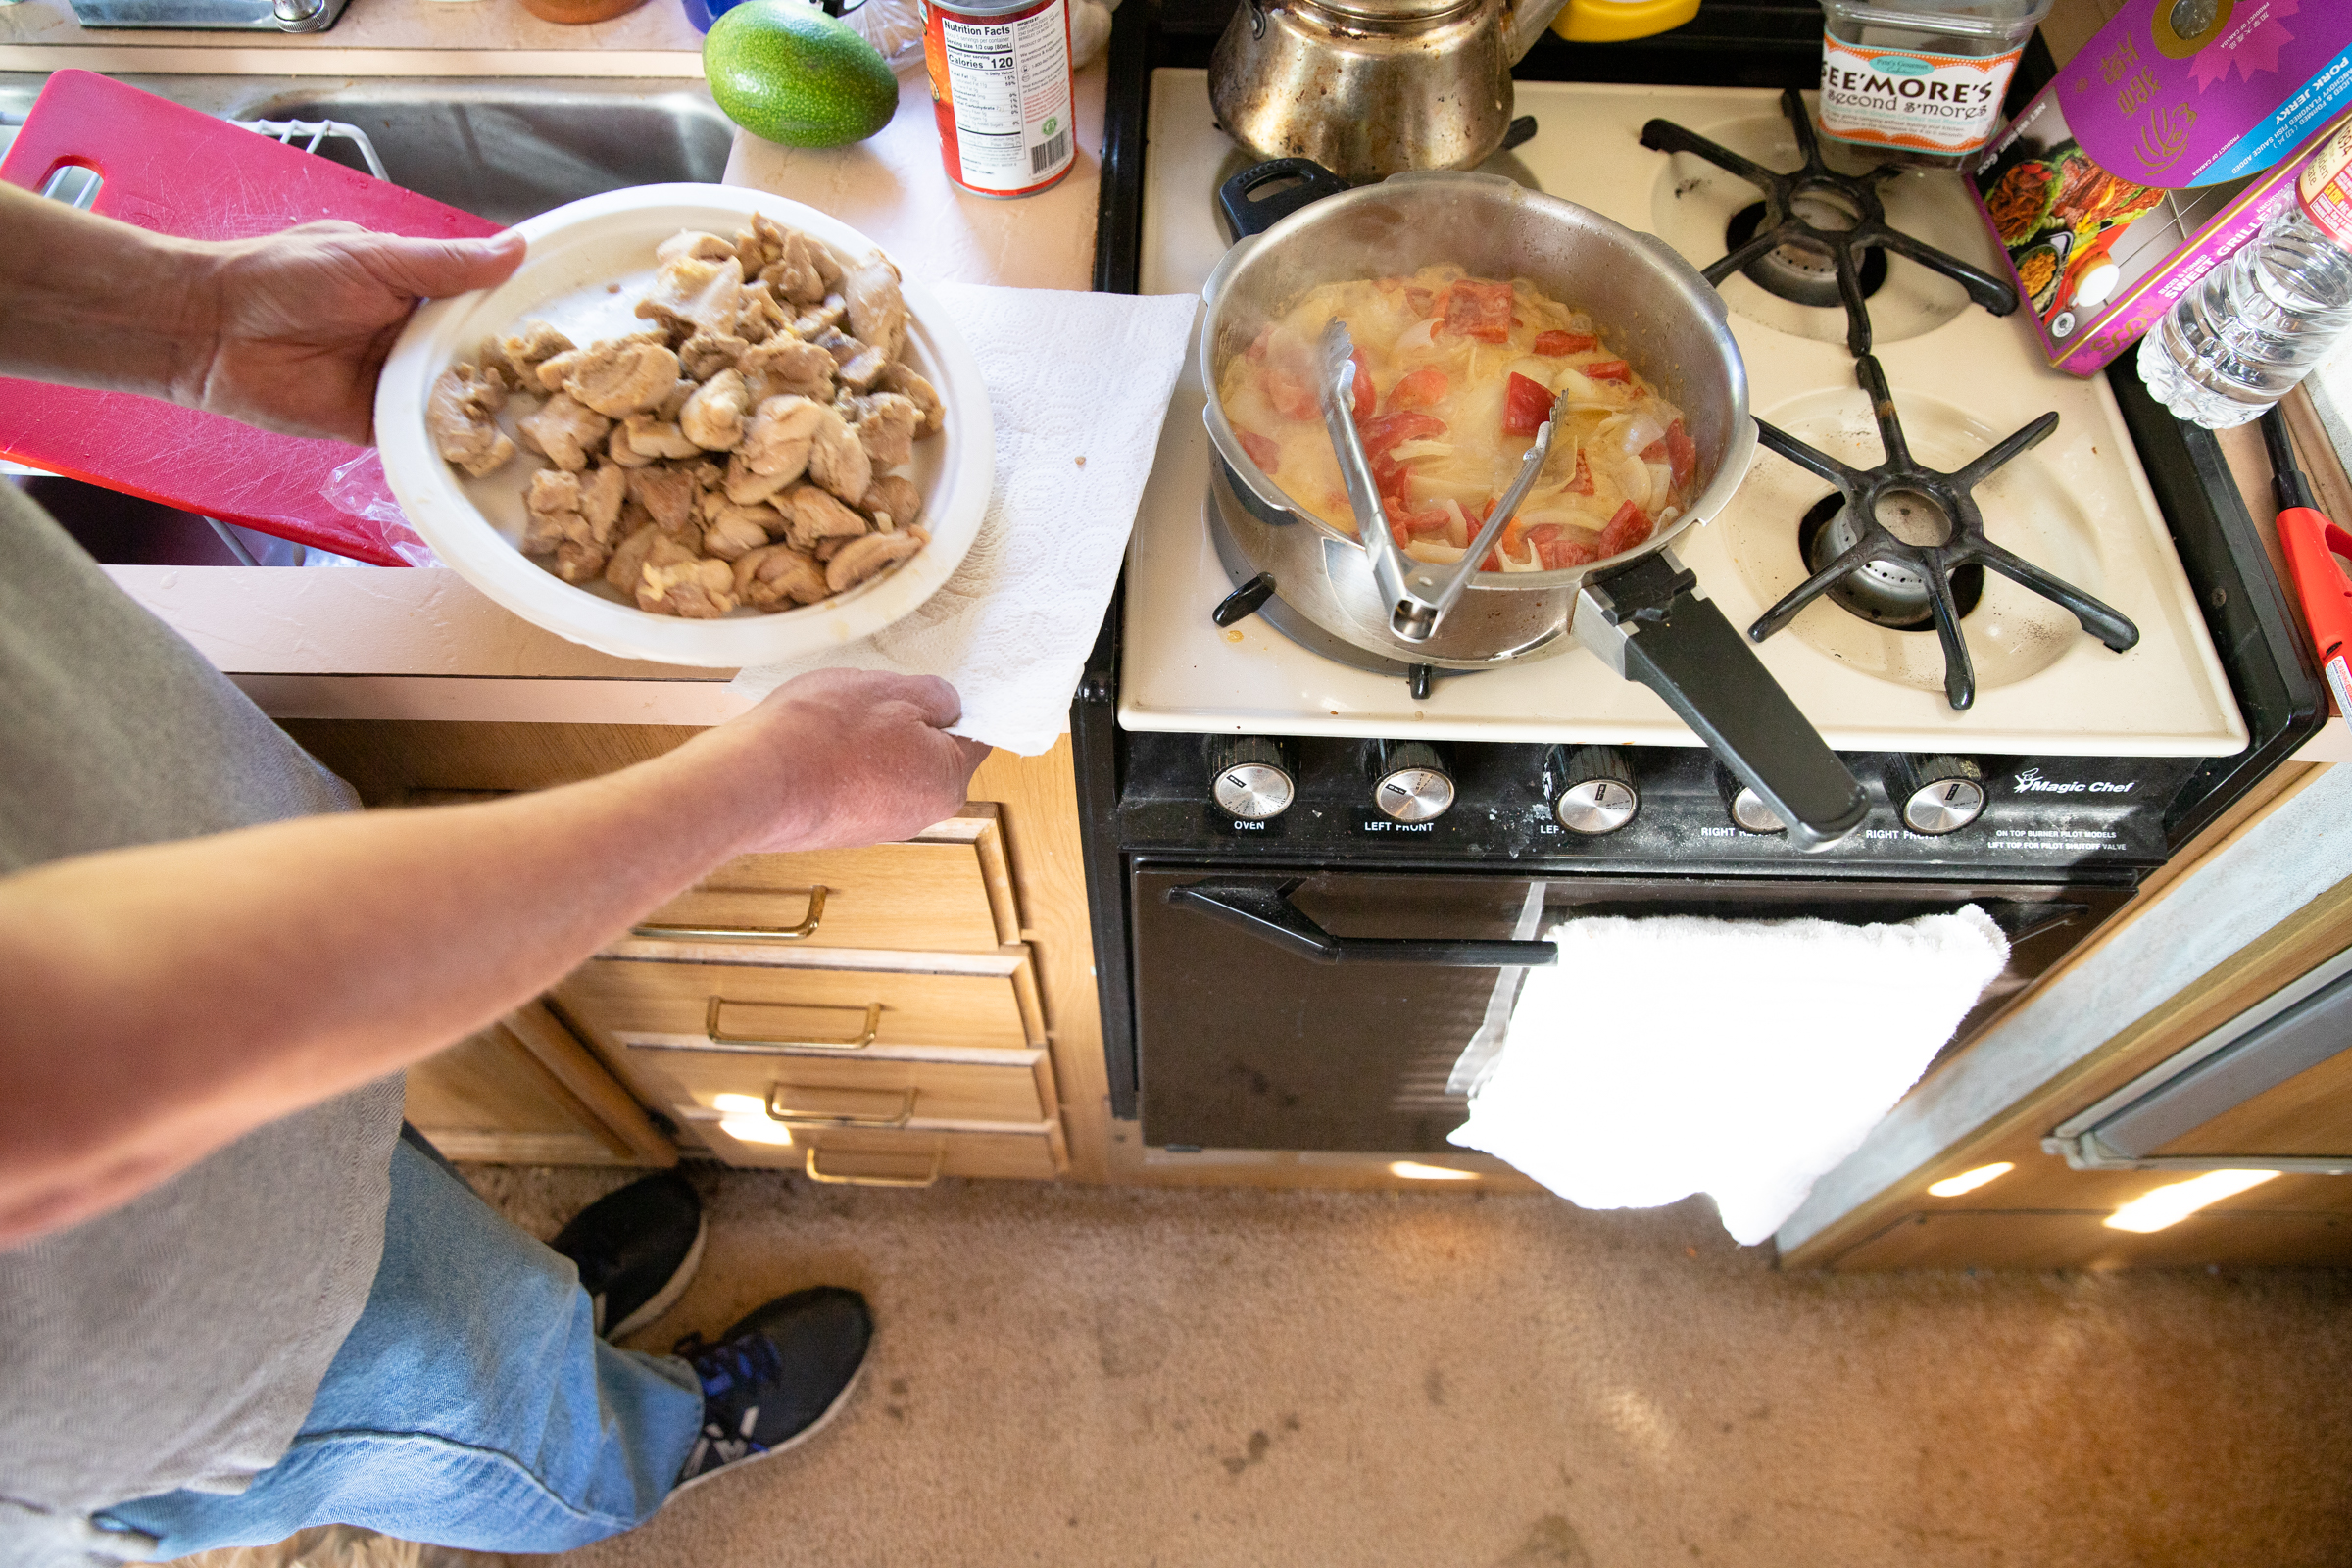 Scott Rodvold cooks Thai curry with chicken for dinner in his motorhome's kitchen on the evening of March 8.